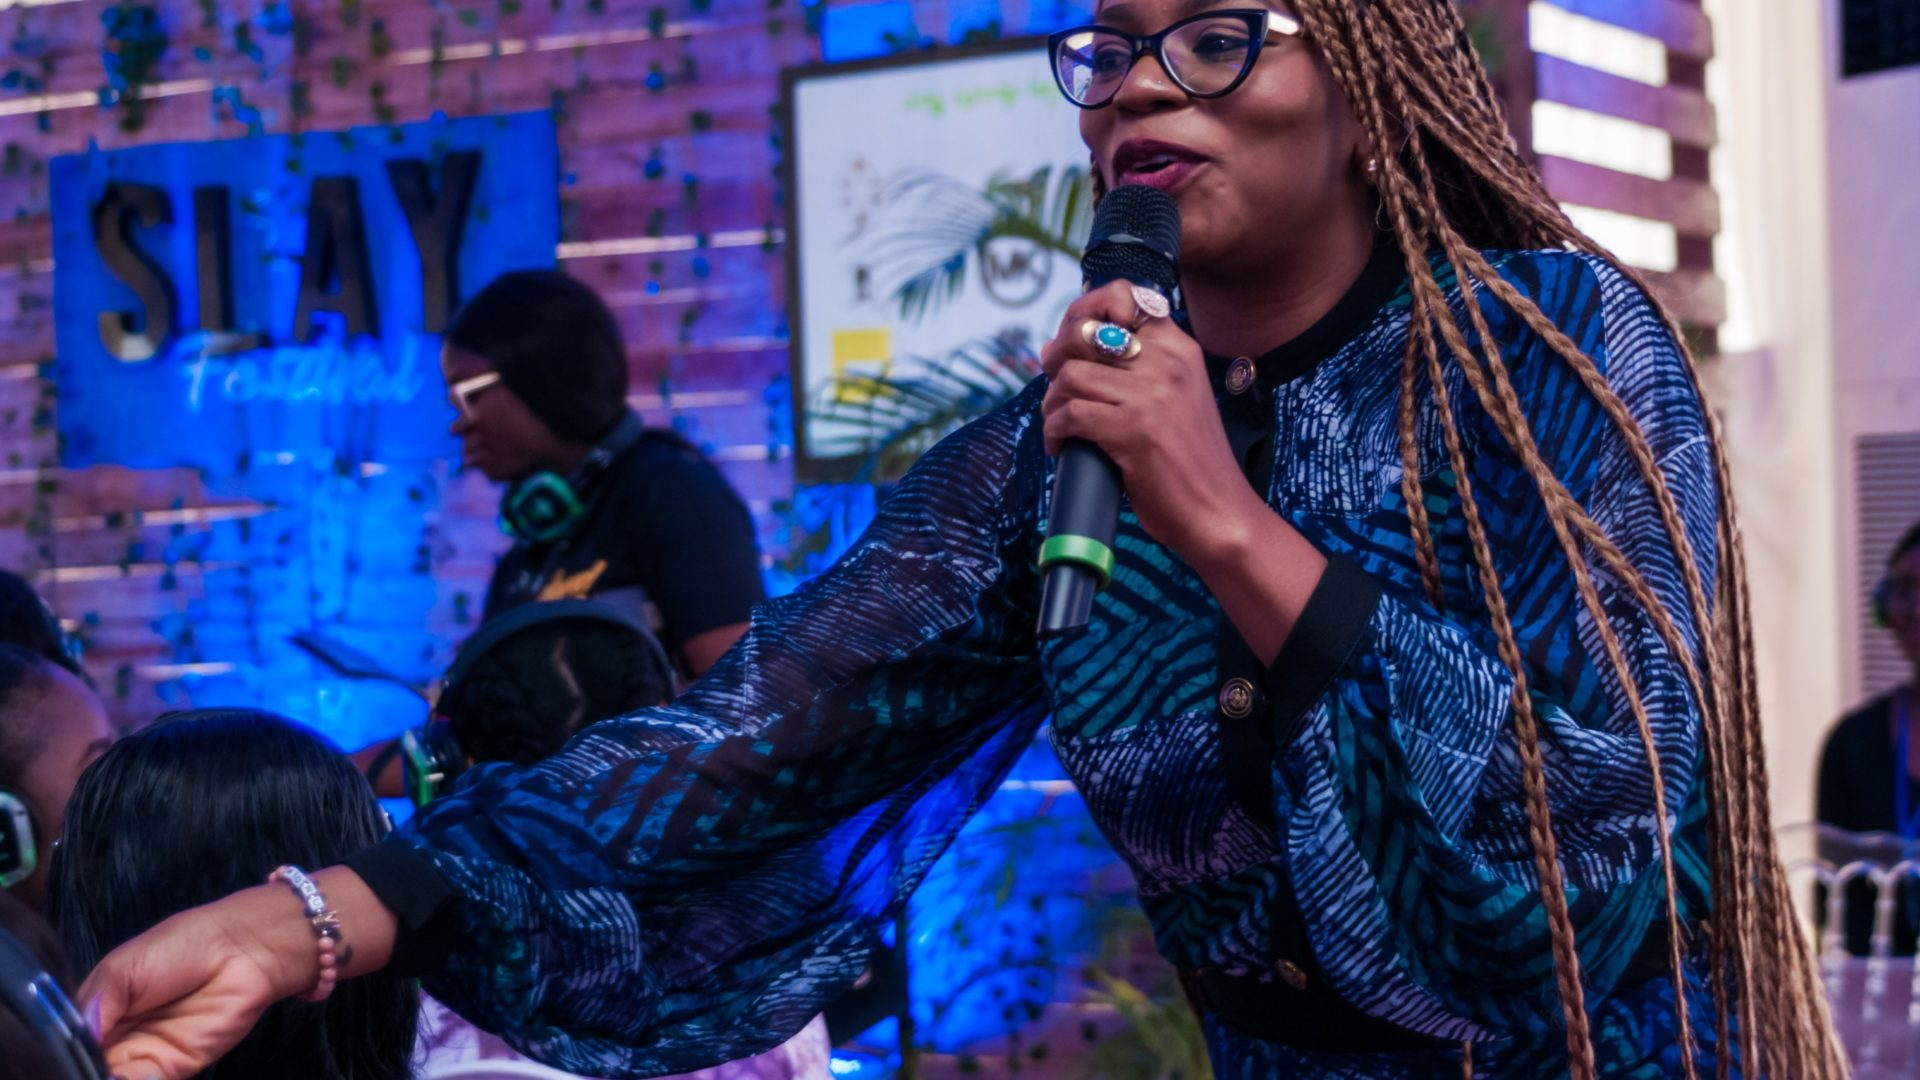 SLAY Festival Is Creating Access And Opportunity For Young African Professionals